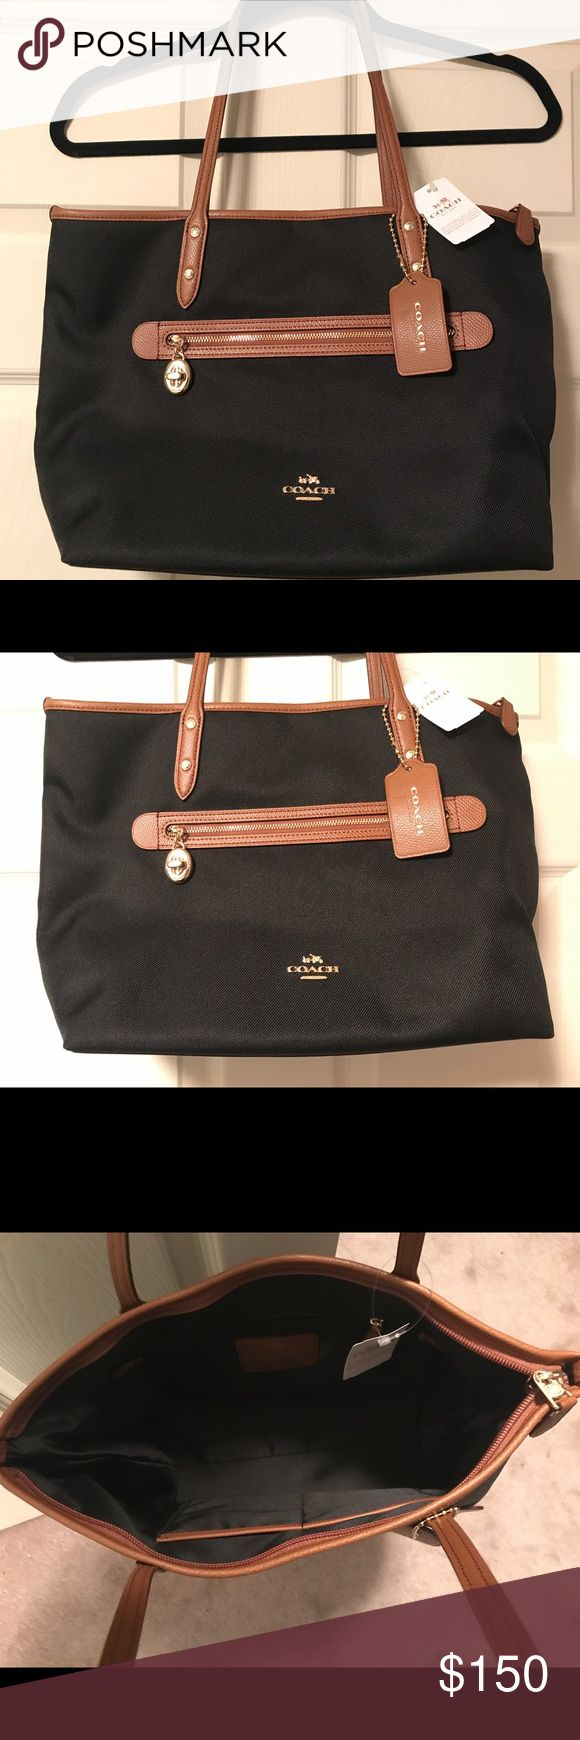 "❤️❤️BNWT Sawyer Coach Tote Bag ❤️❤️ ❤️❤️BNWT Sawyer Coach Tote Bag ❤️❤️ Polyester twill, inside zip, cell phone and multifunction pockets, zip closure, satin lining, handles with 10"" drop. Bags Totes"